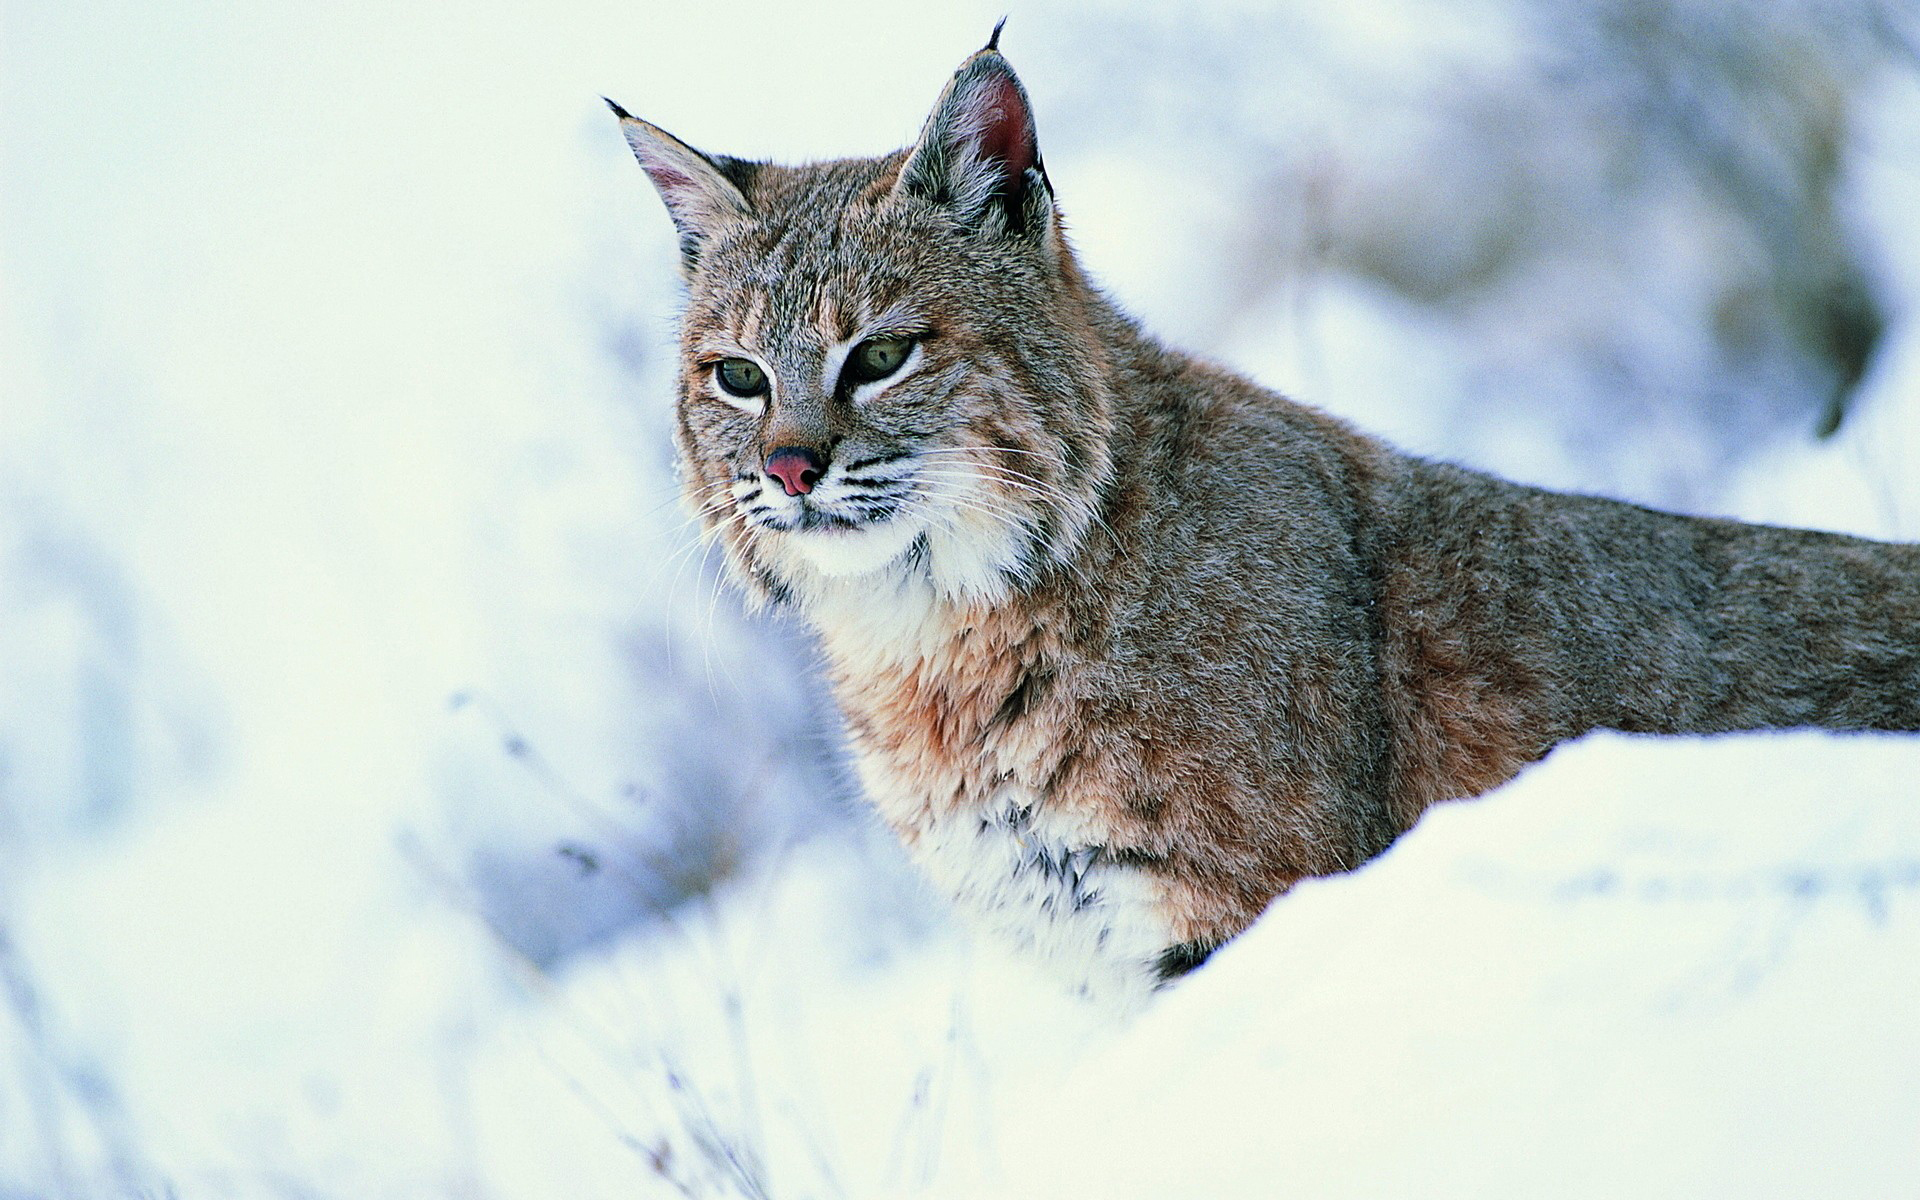 Image: Lynx, winter, snow